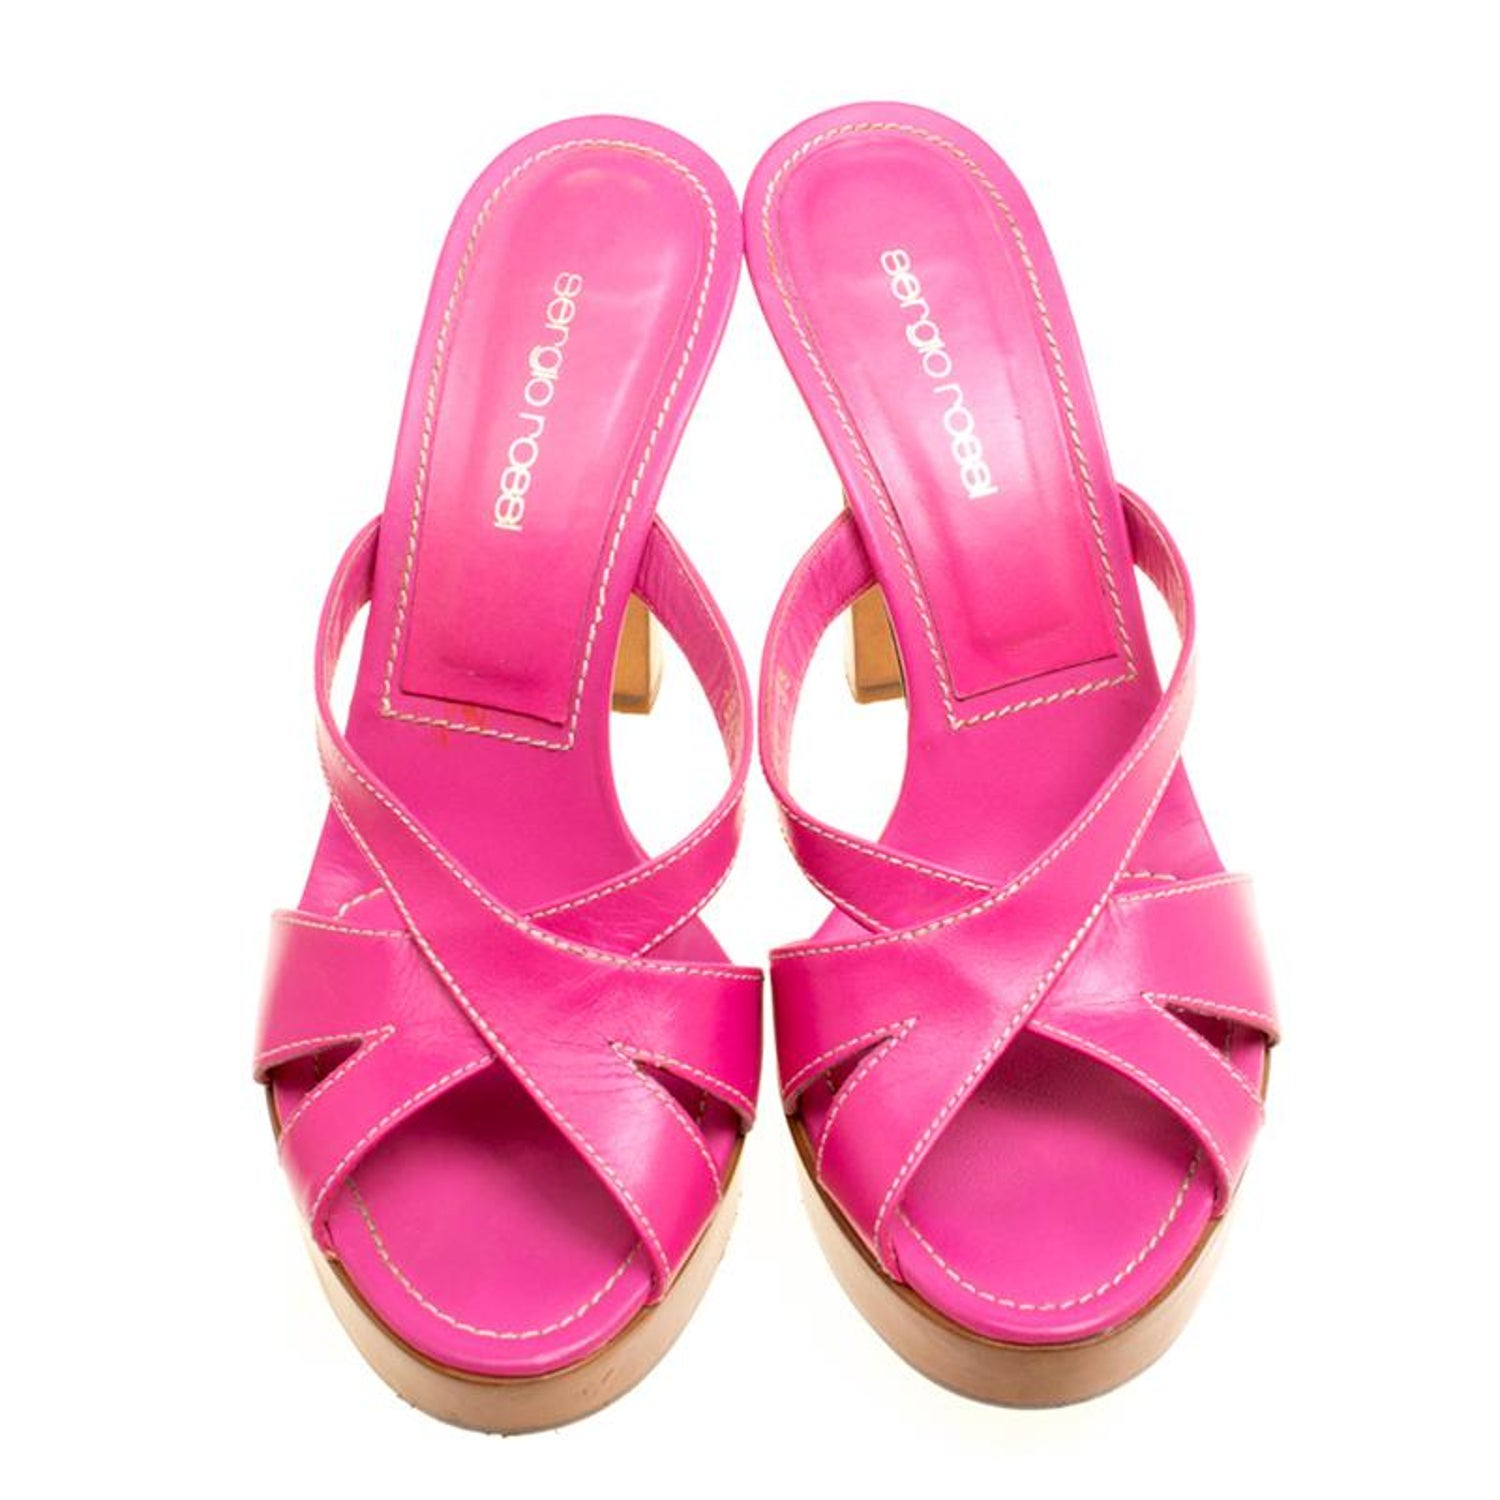 862c82c5758 Sergio Rossi Pink Leather Peep Toe Platform Slides Size 38 For Sale at  1stdibs